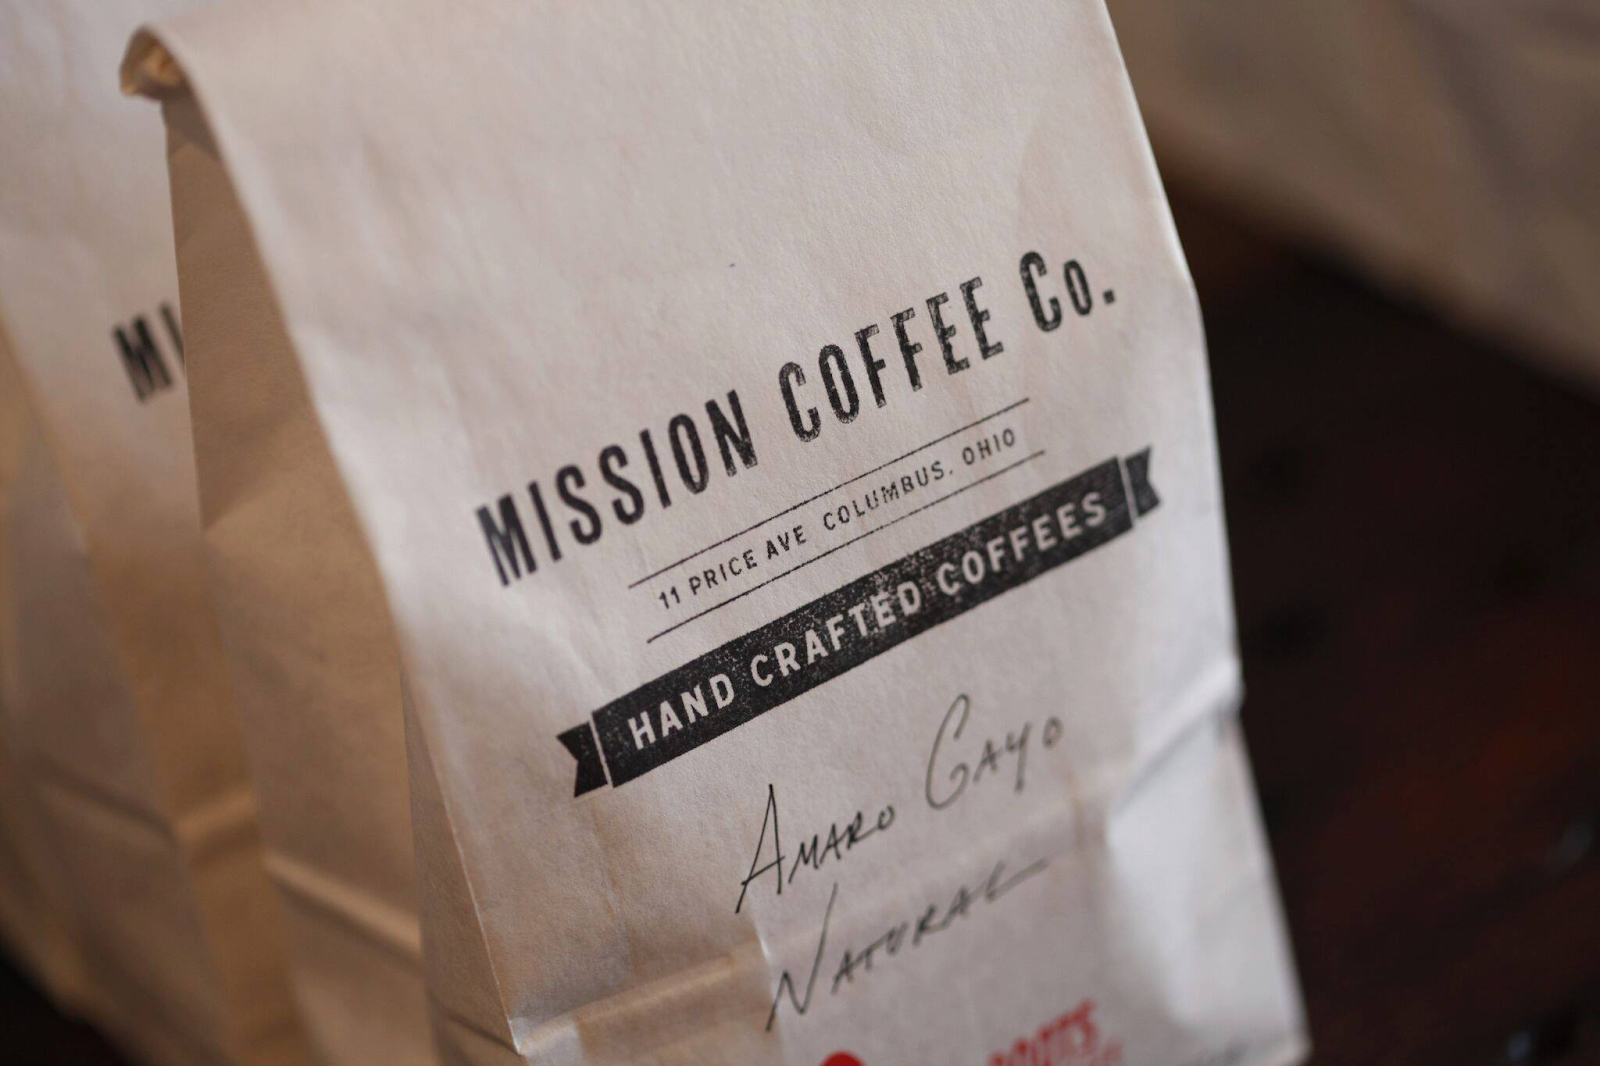 Close up of bag of Mission Coffee Co. coffee beans